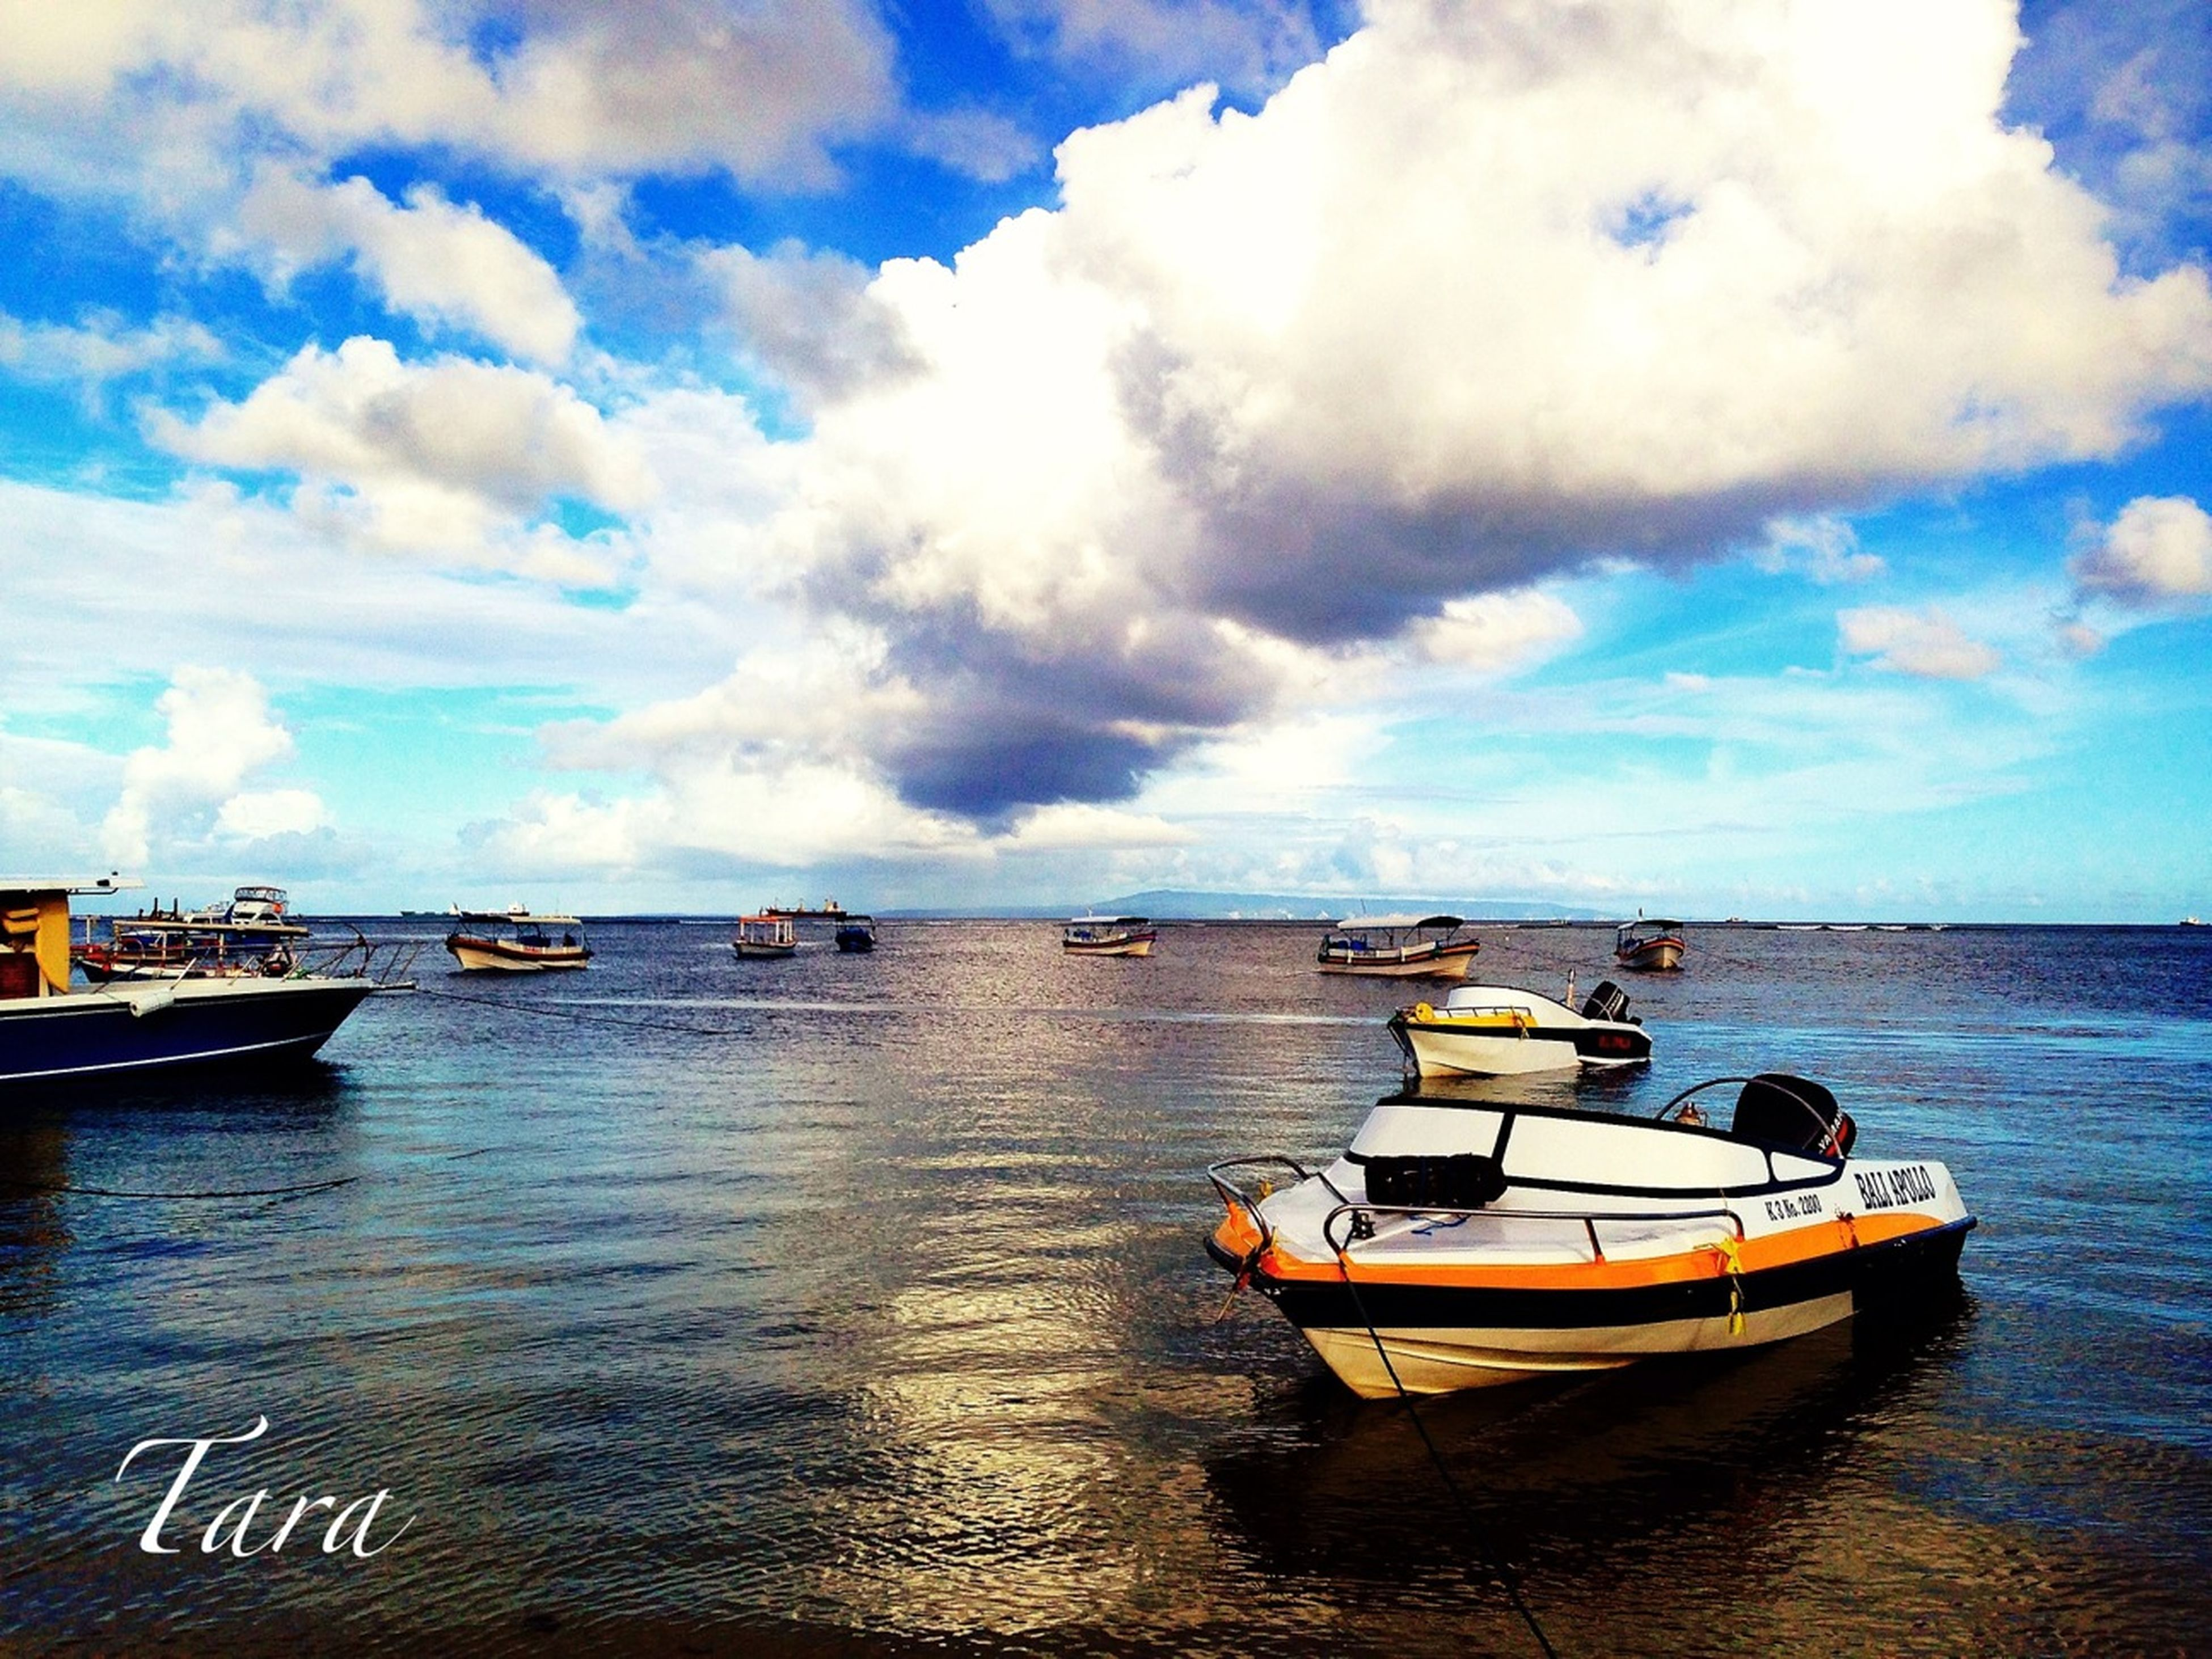 nautical vessel, transportation, mode of transport, boat, water, moored, sky, sea, cloud - sky, waterfront, cloud, tranquil scene, tranquility, travel, cloudy, nature, scenics, beauty in nature, sailing, rippled